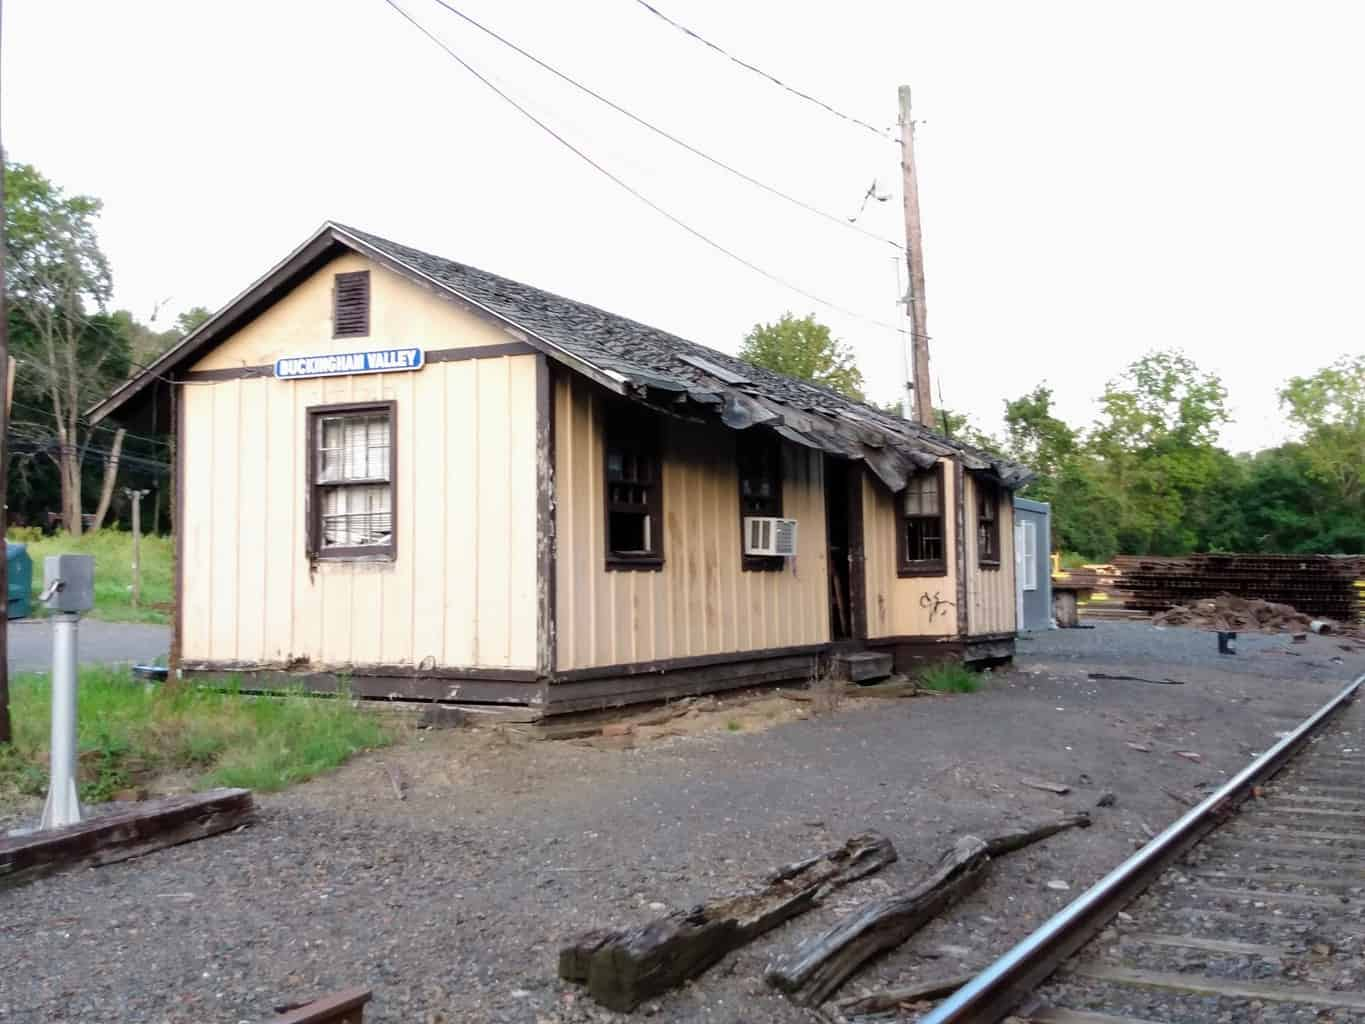 Buckingham Valley Station on the New Hope Railroad Line